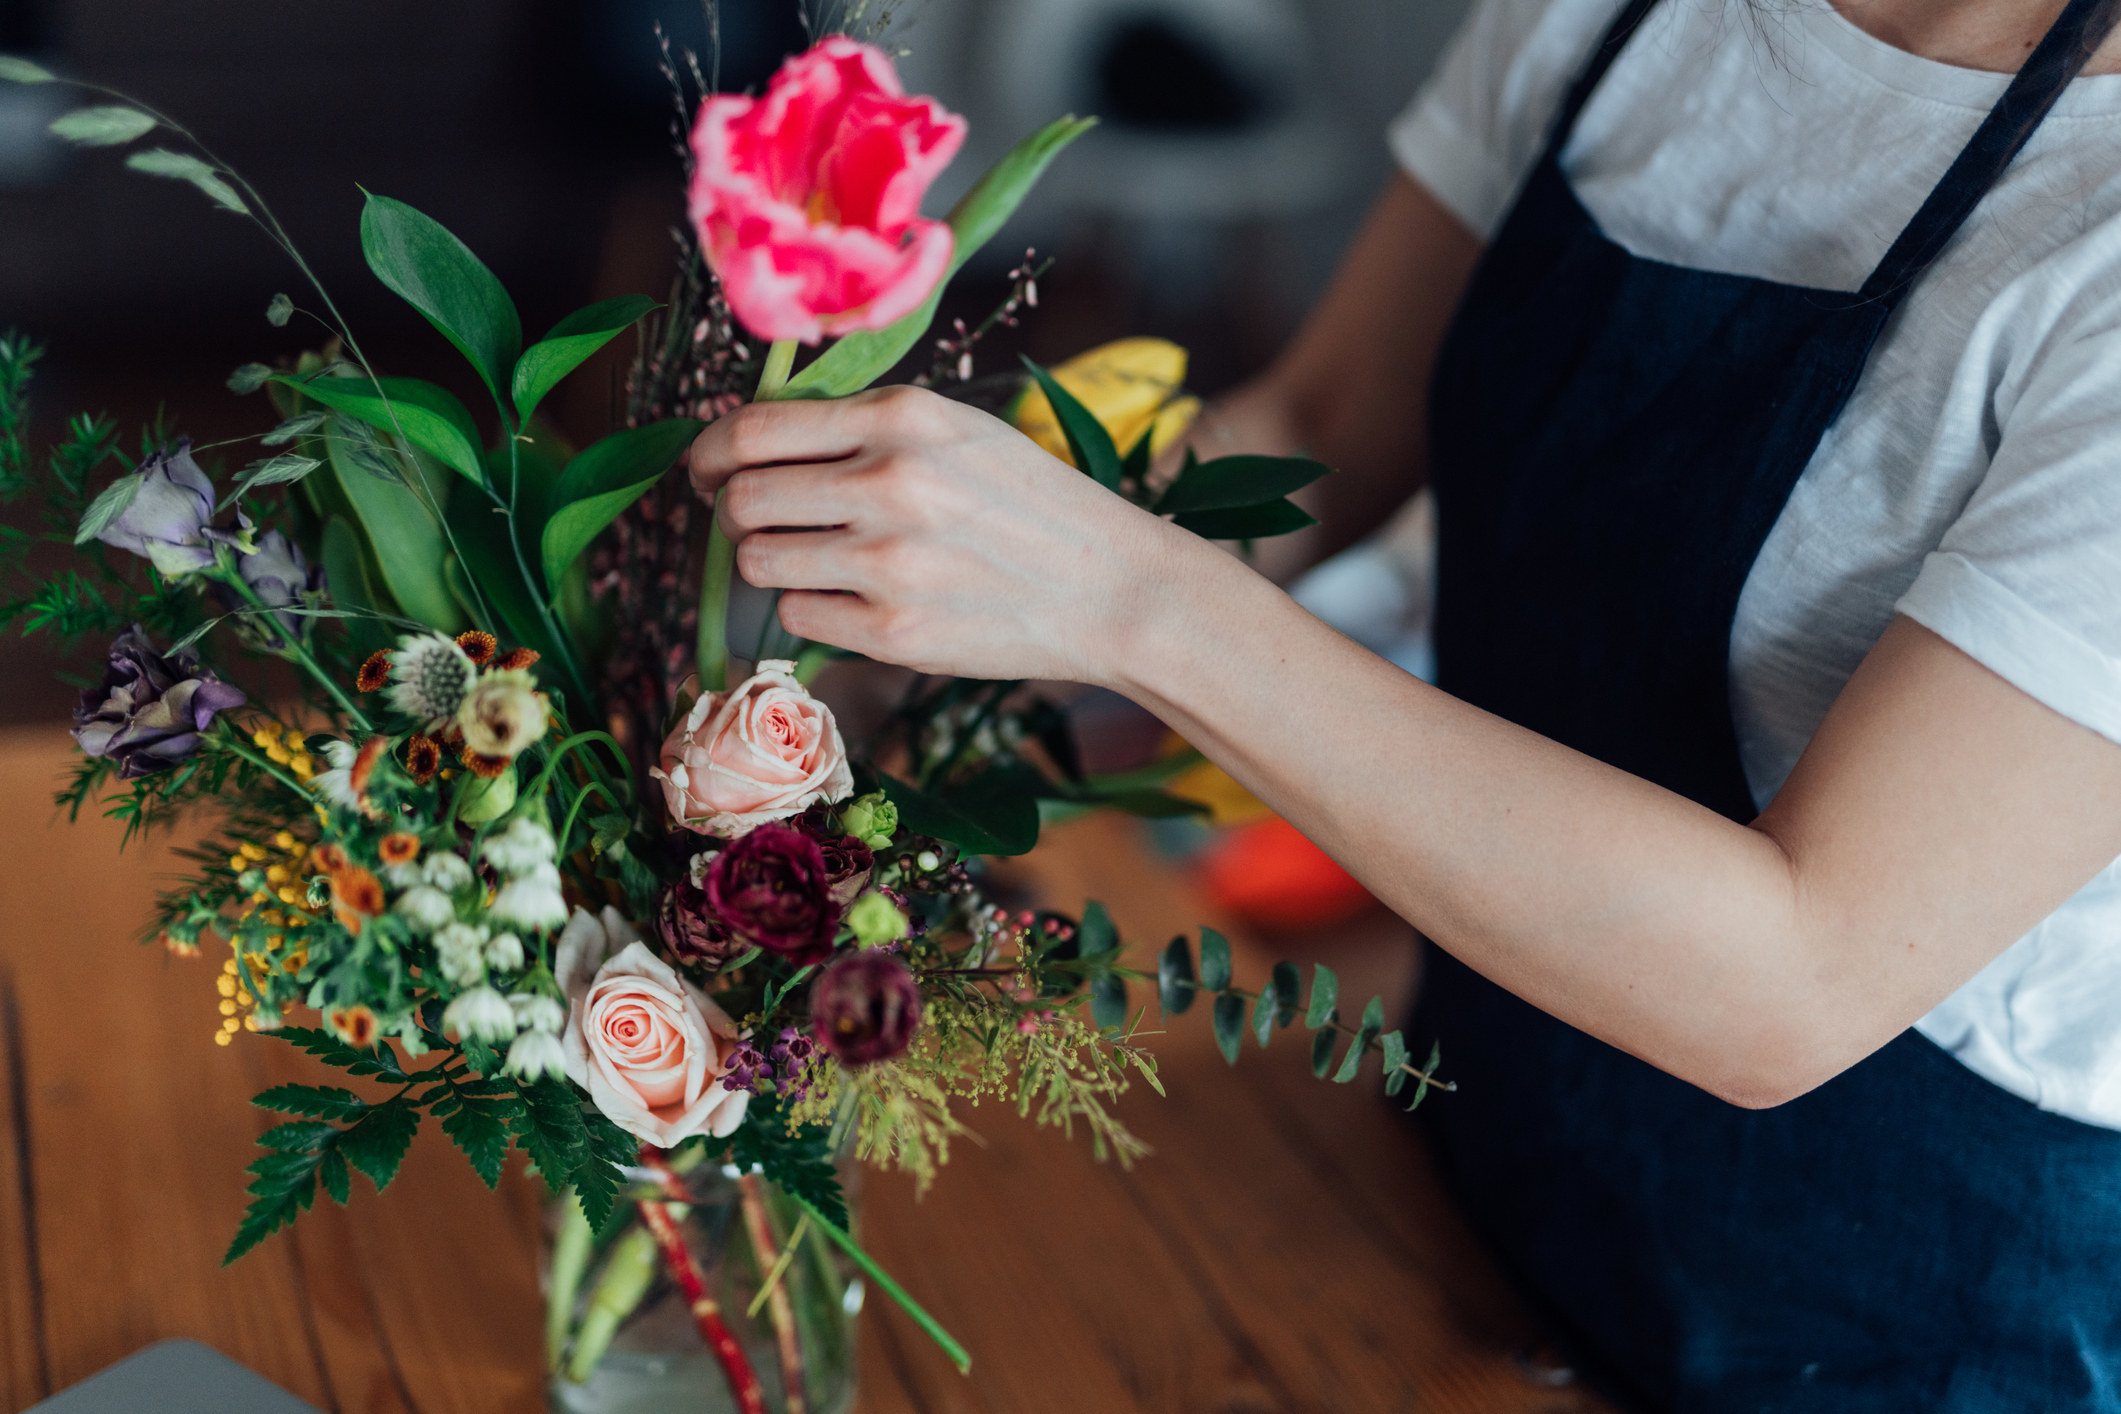 A person arranging flowers in a store